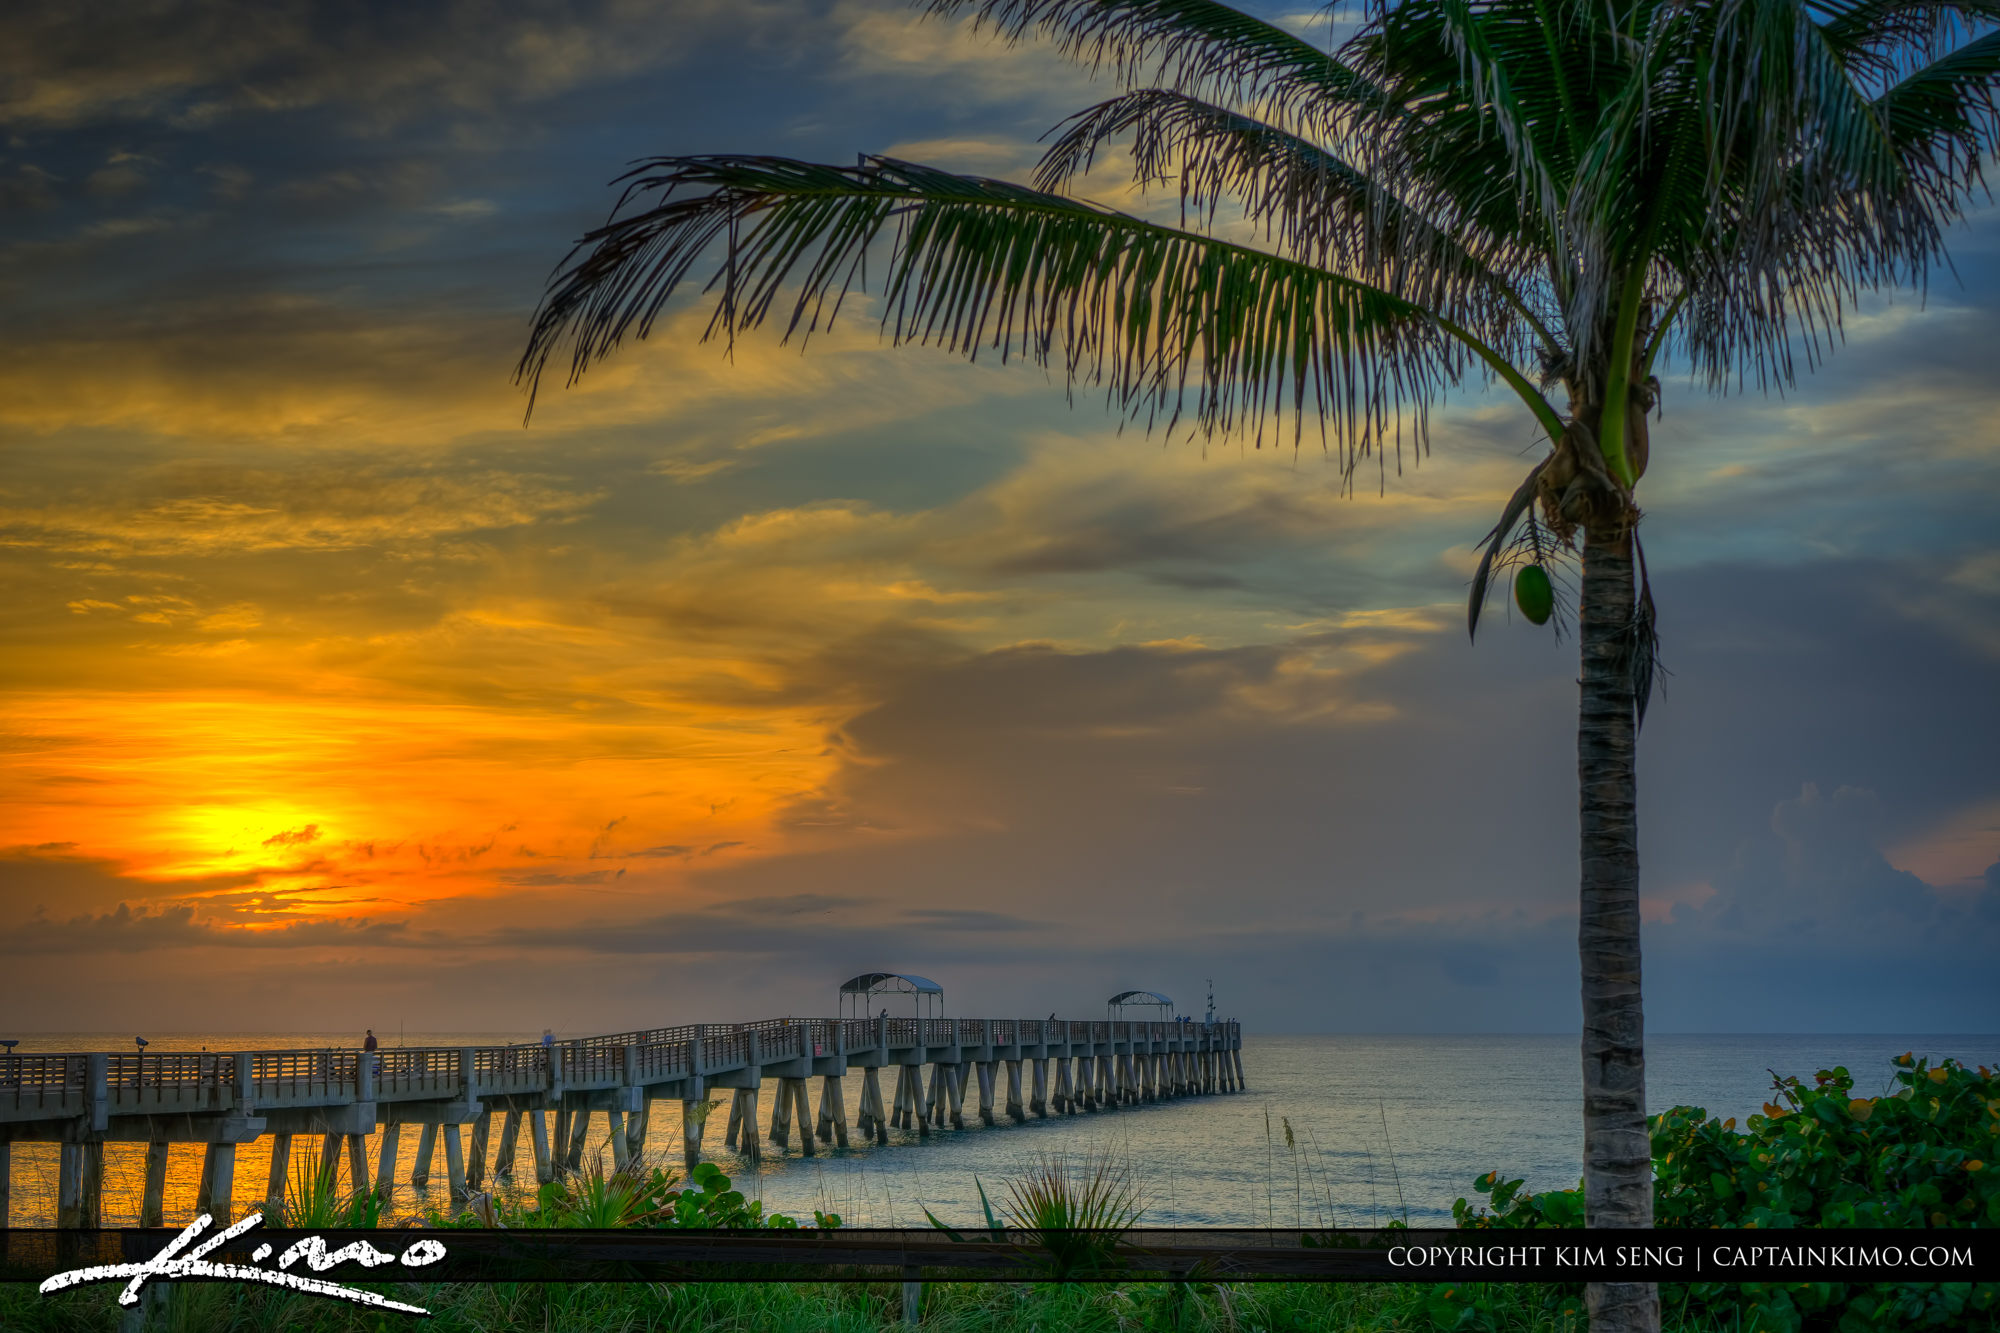 Coconut Tree at Sunrise from Lake Worth Beach Pier